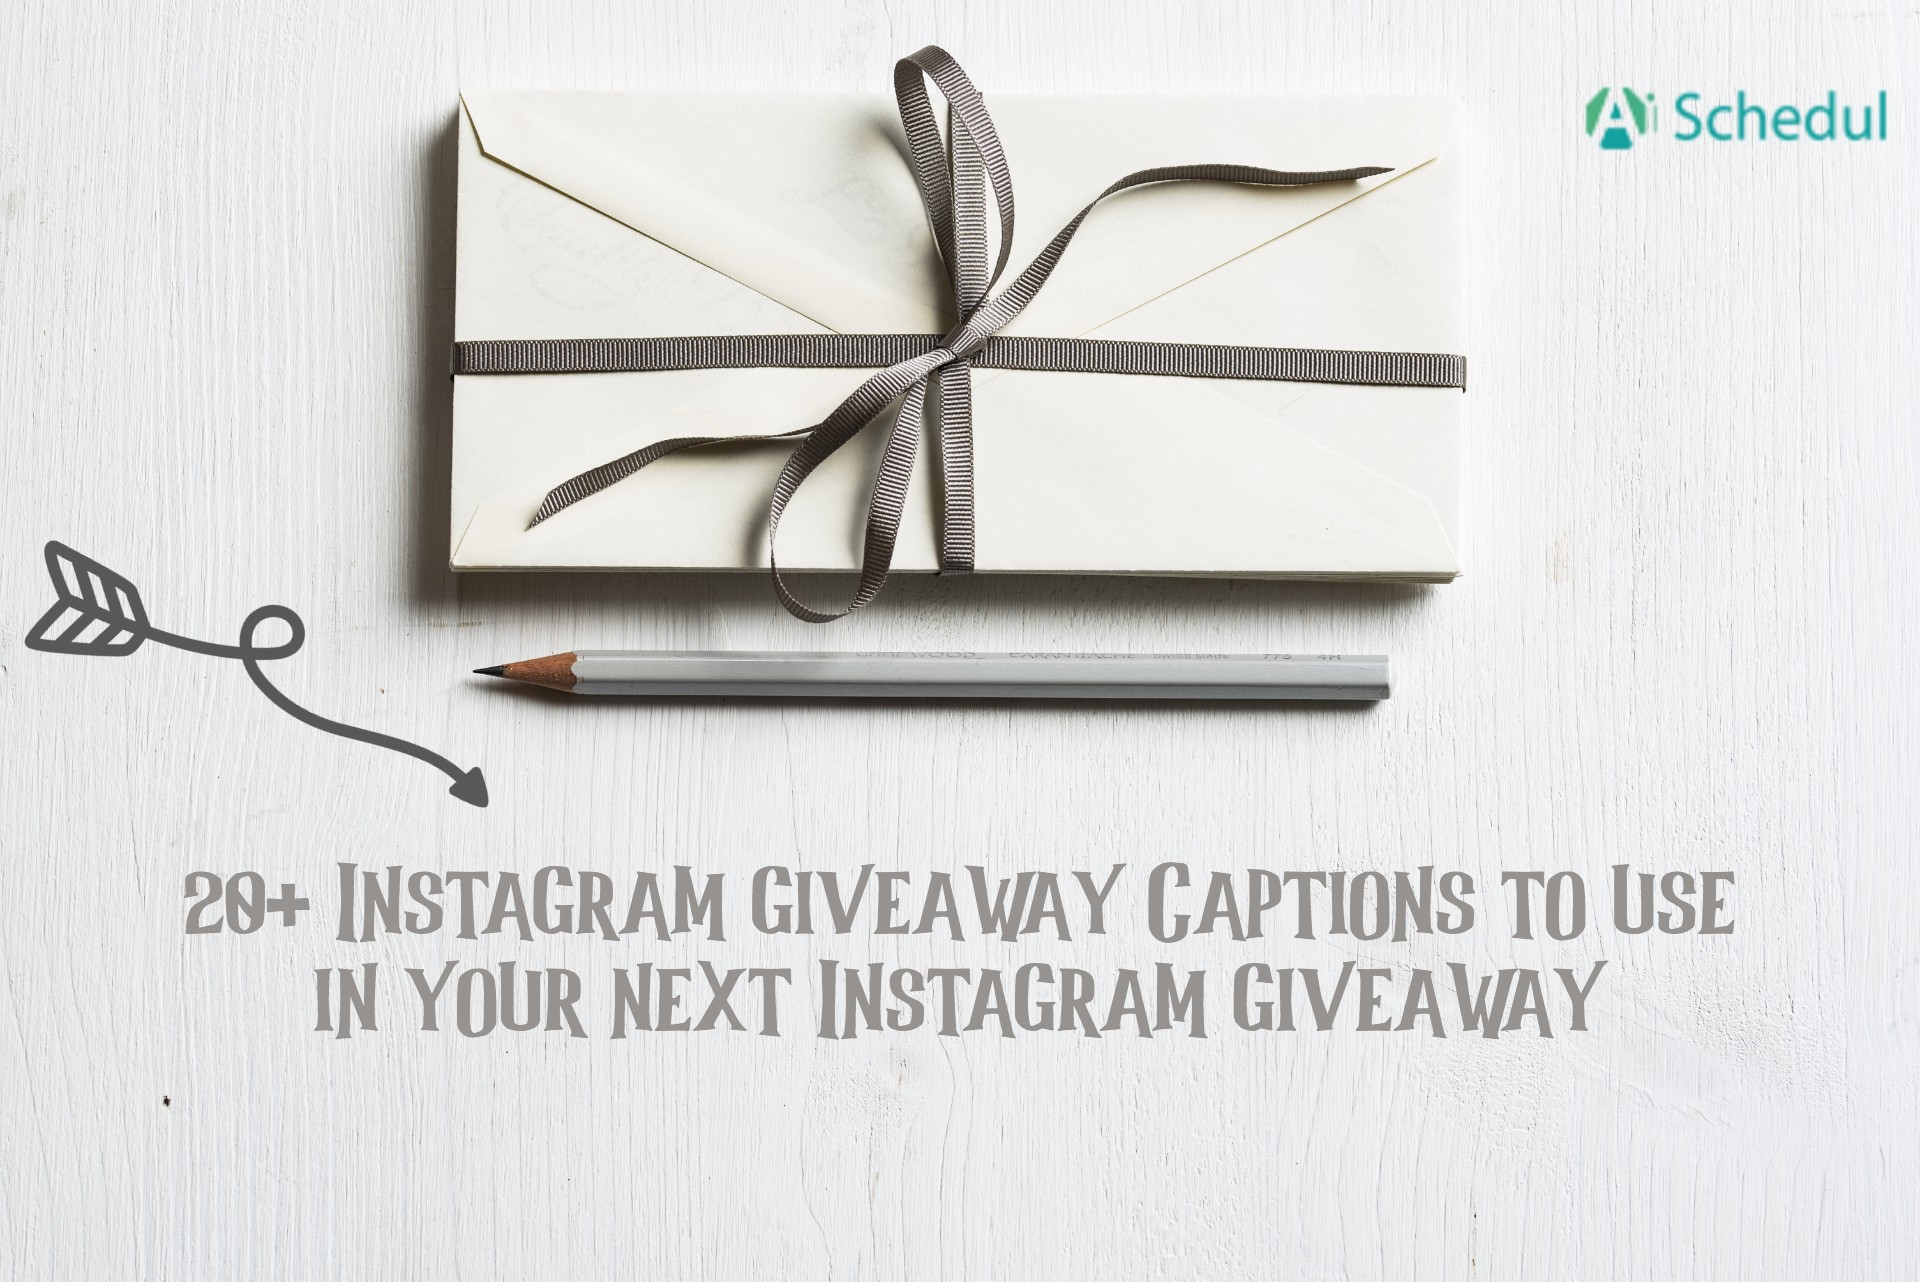 Instagram giveaway caption